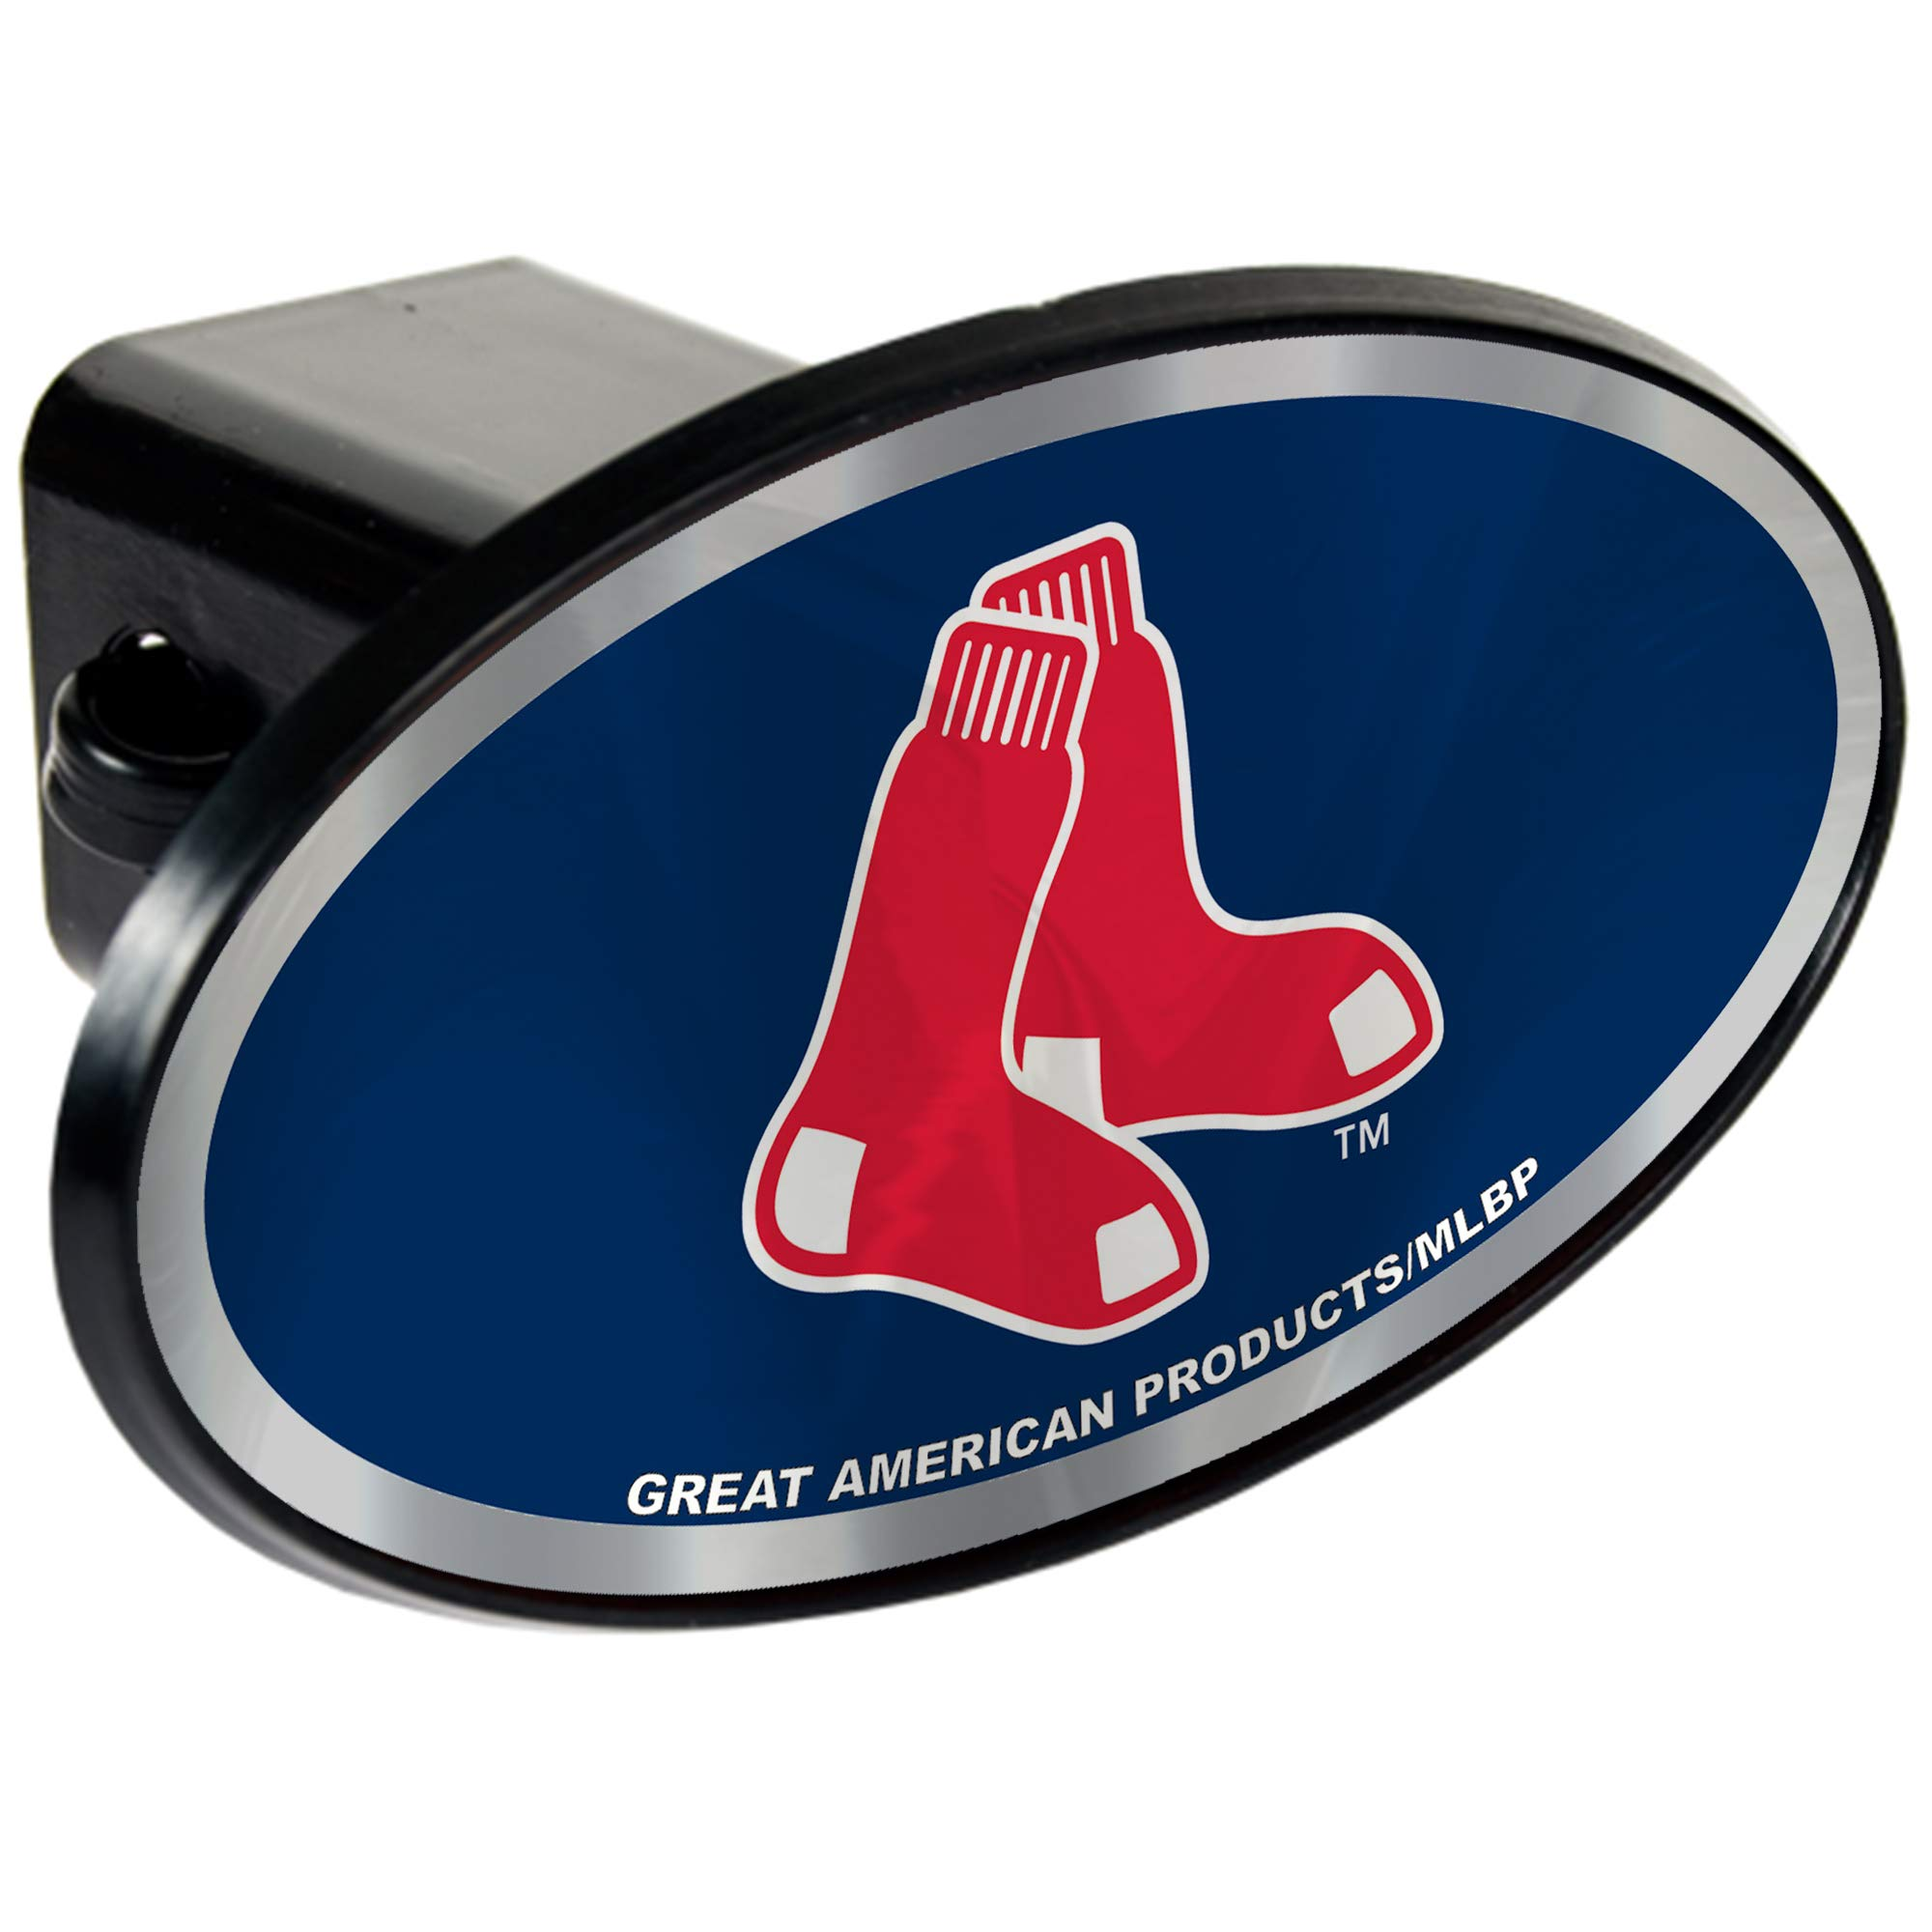 Boston Red Sox 2'' MLB Trailer Hitch Receiver Cover - ABS Plastic by Quality Hitch Covers